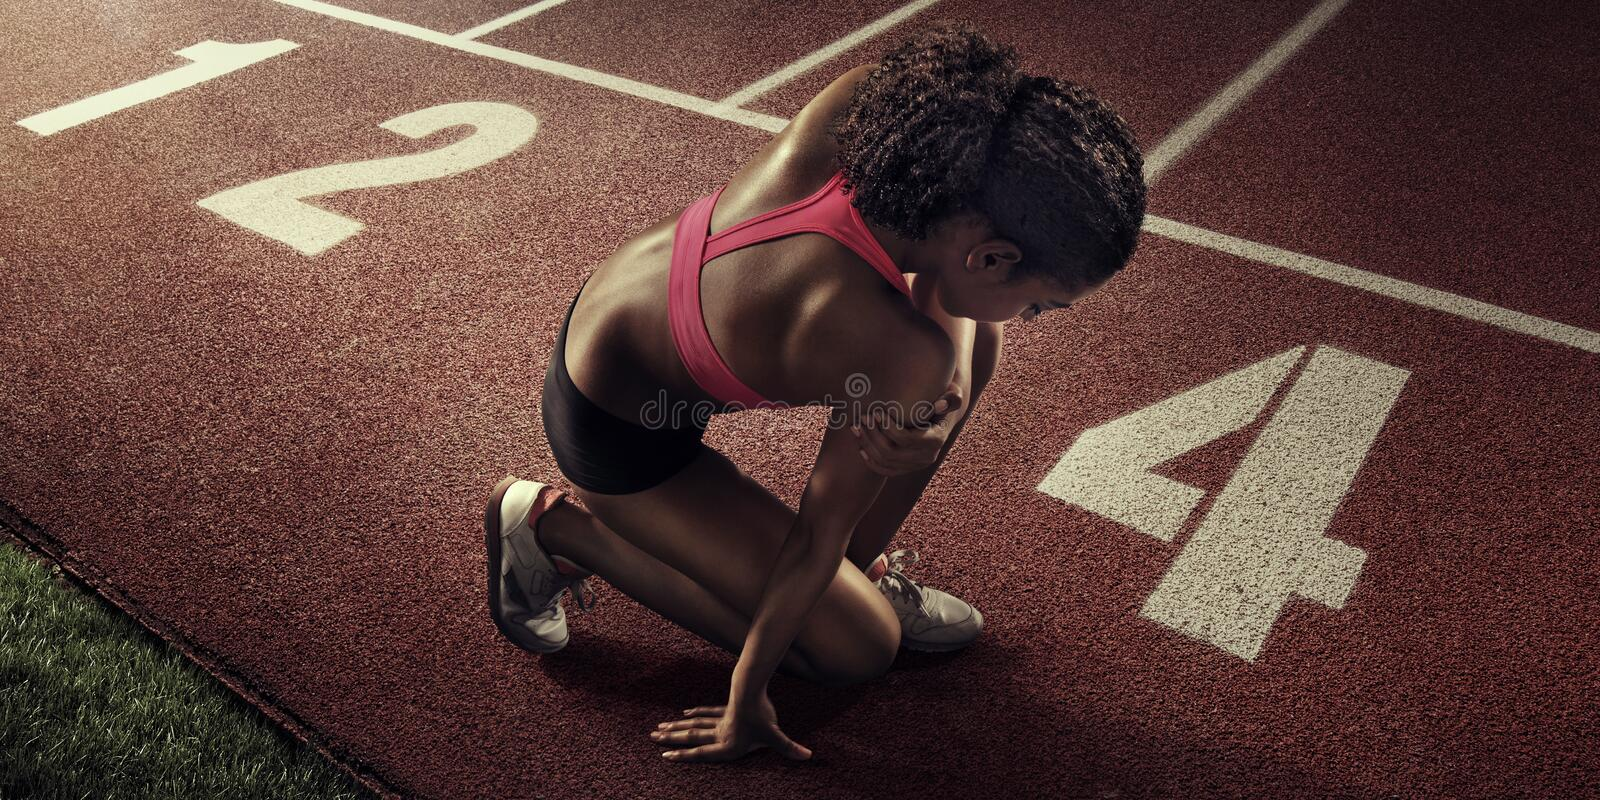 Sport. Runner. Young sportswoman stretching and preparing to run royalty free stock photos